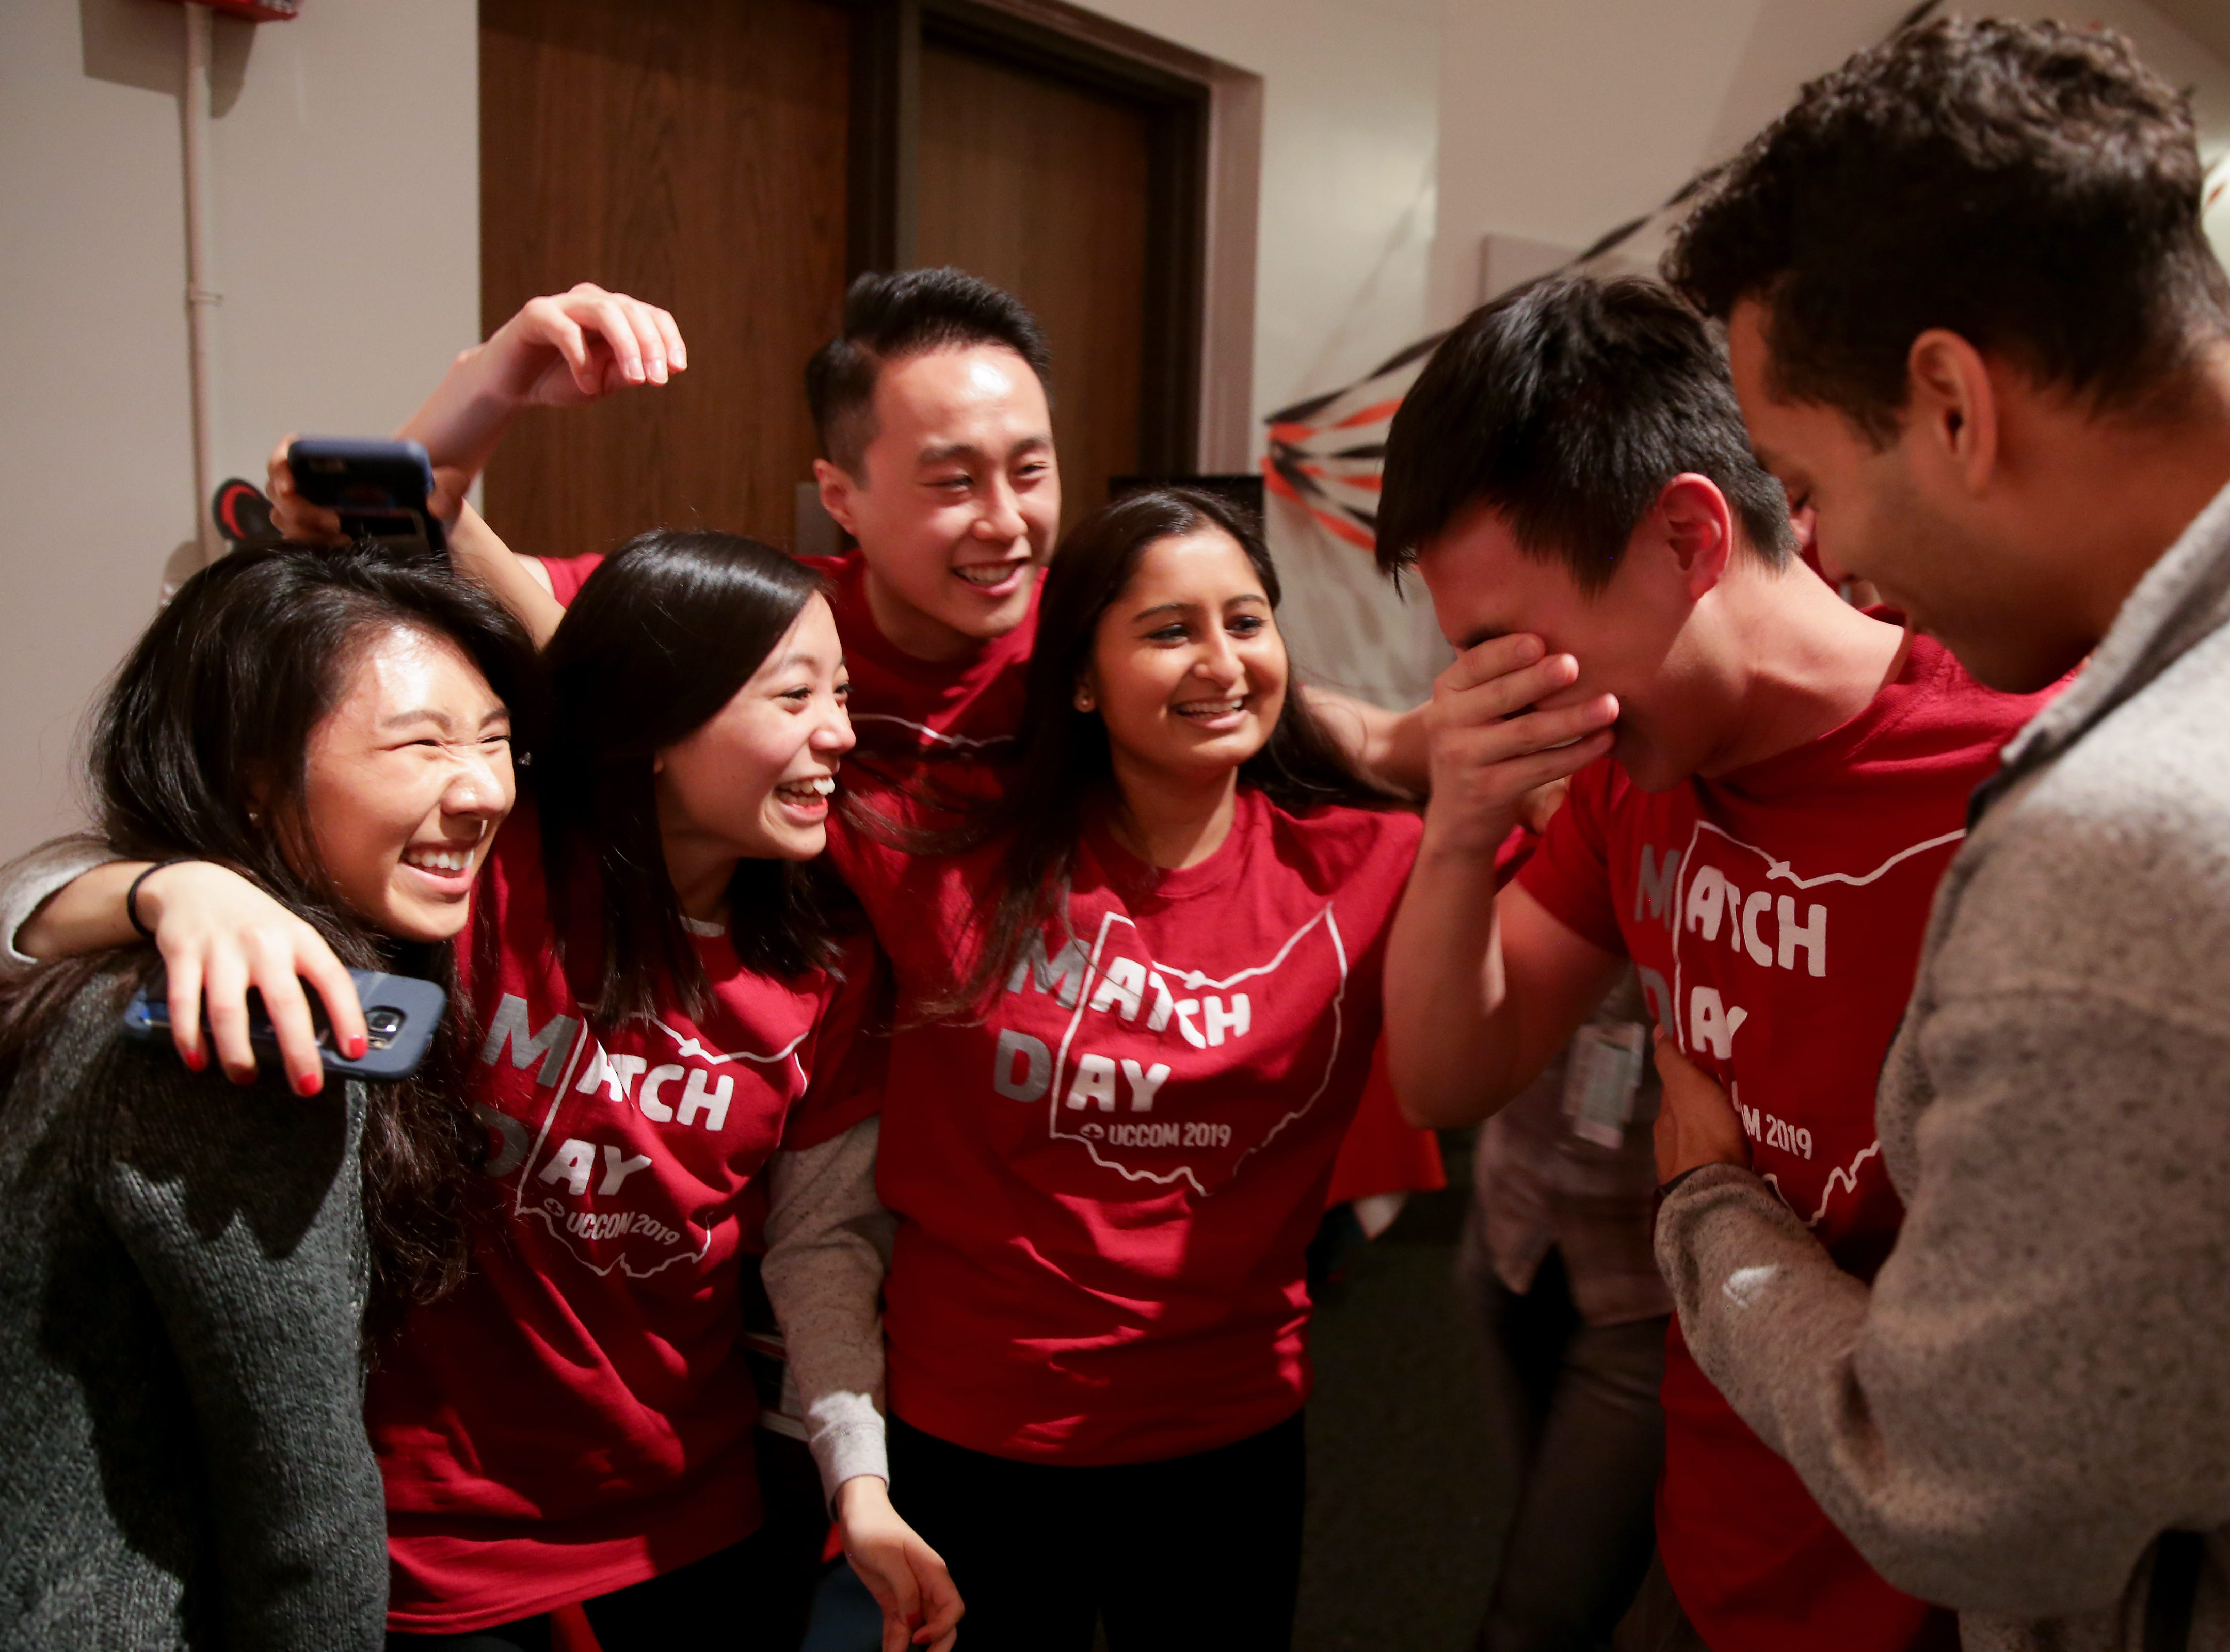 Patrick Lee, center, wipes away tears after finding out he will doing his residency in internal medicine at the University of Southern California, during Match Day, Friday, March 15, 2019, at the University of Cincinnati's College of Medicine.